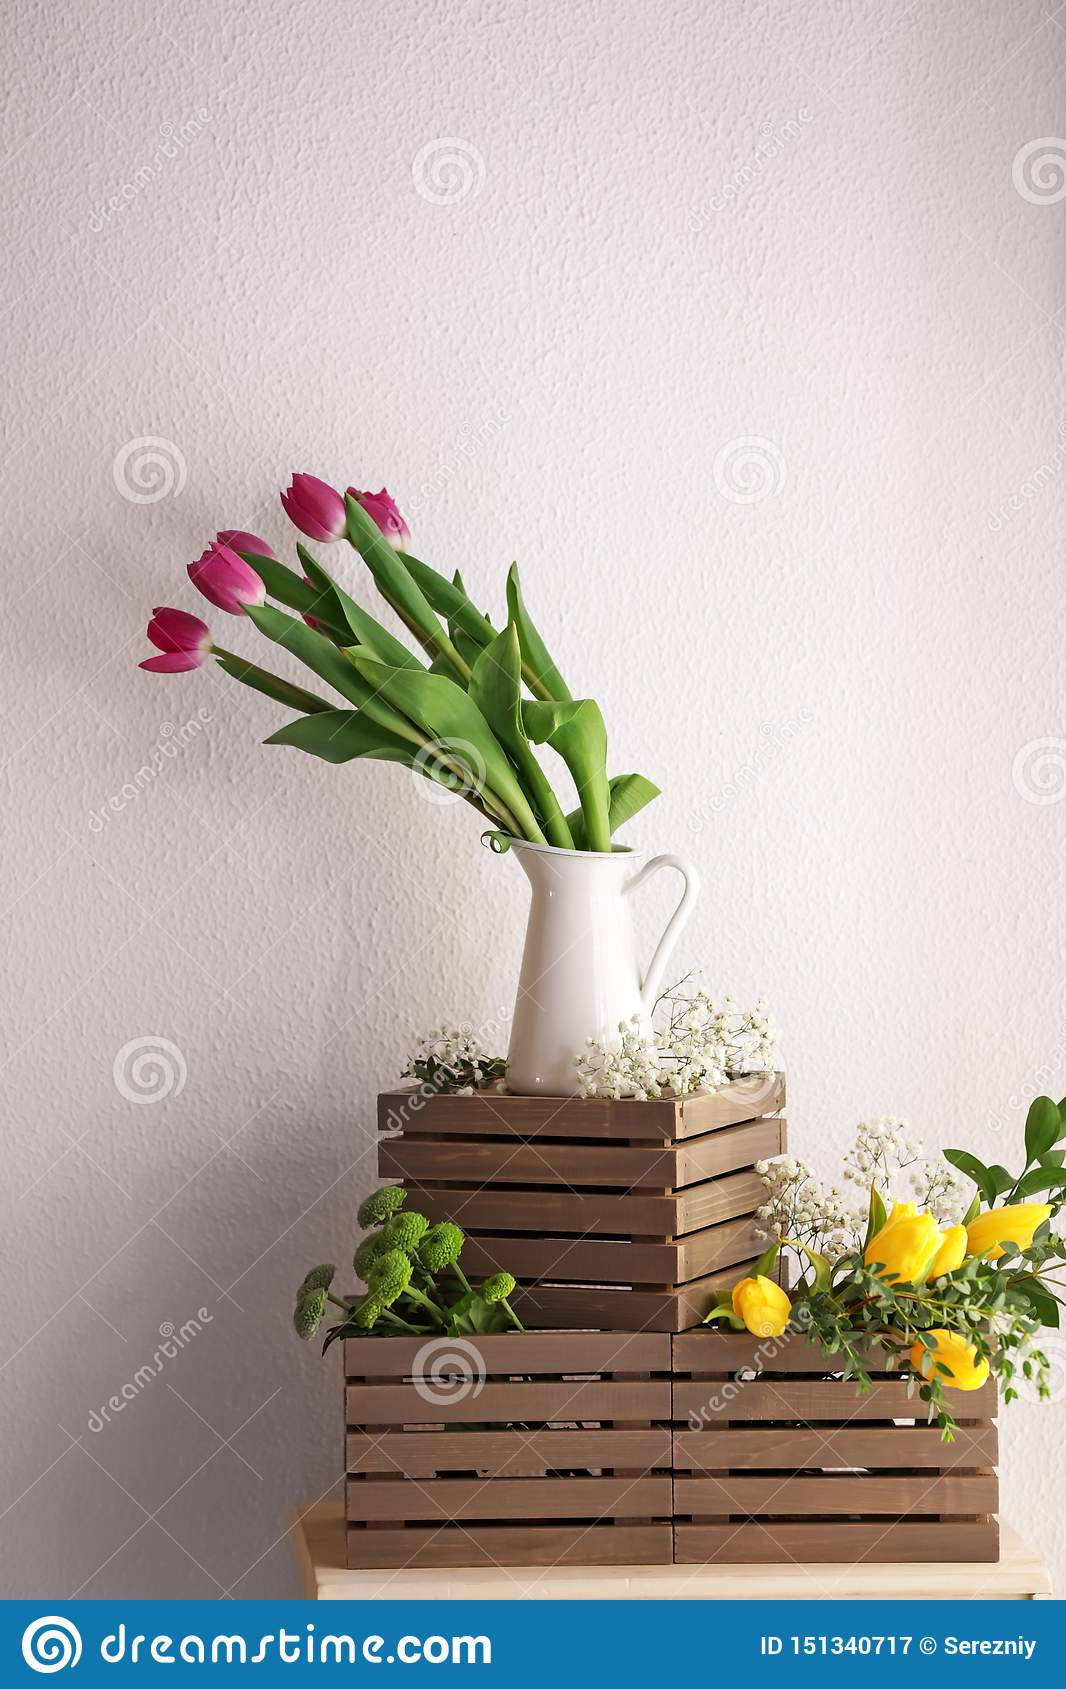 Vase with beautiful tulips and other flowers on wooden boxes